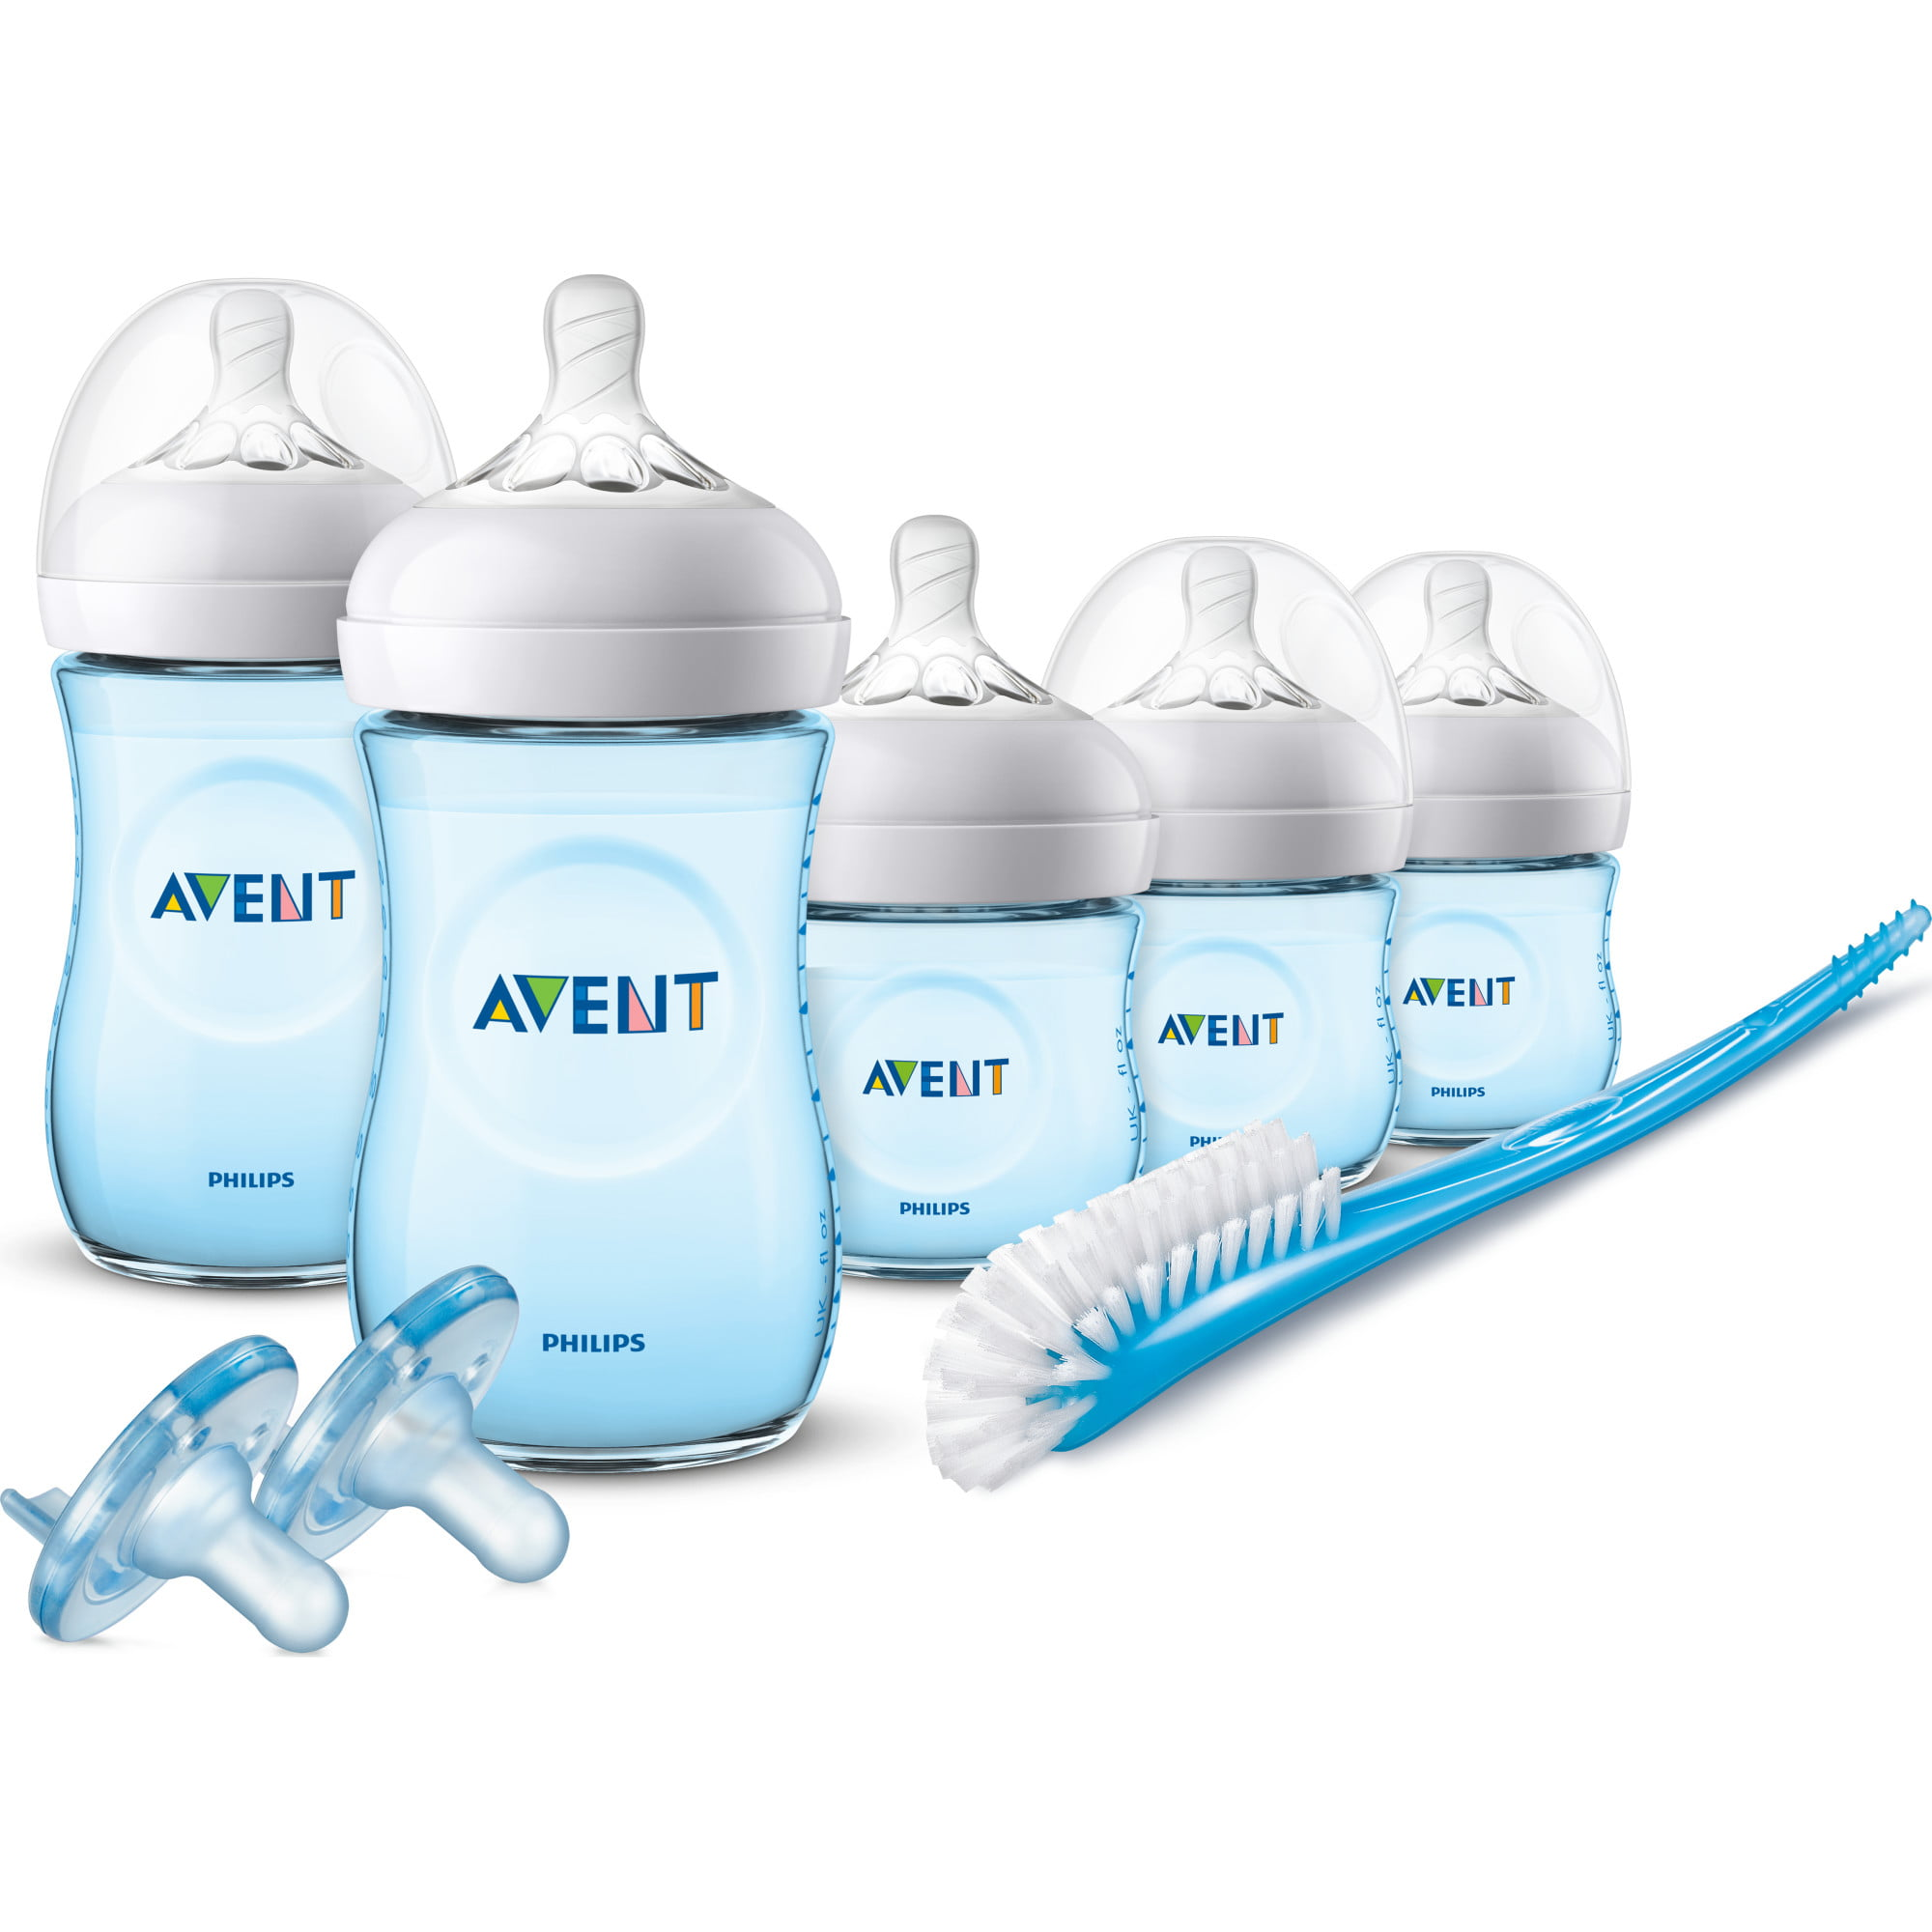 Simple Electric Breast Pump Charger or Batteries Suitable for Avent bottles